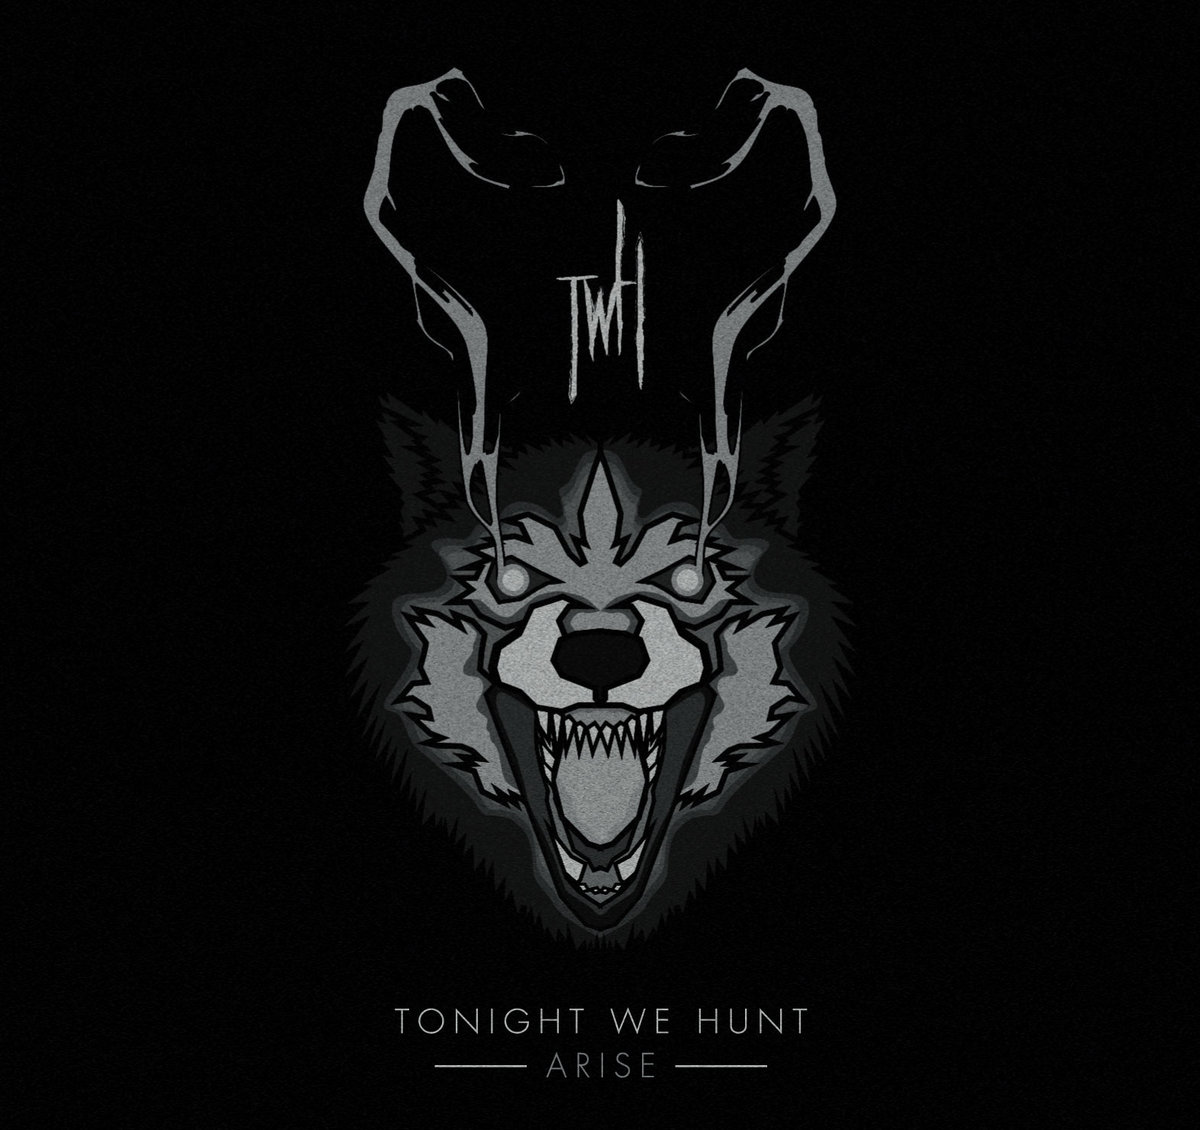 www.facebook.com/Tonight-We-Hunt-336136339819739